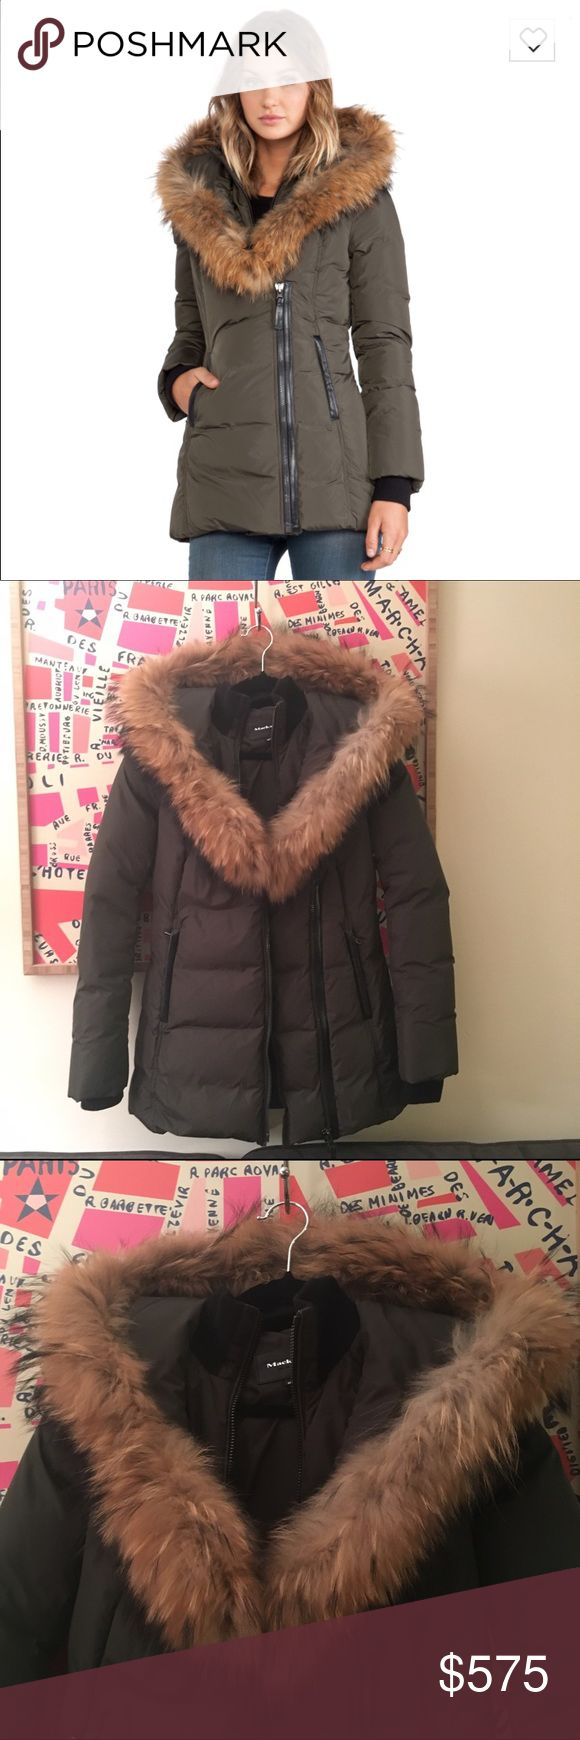 $750 Mackage Adali Down Coat Parka Fur XS Beware of fake Mackage! This is authentic. Racoon Fur hood. Filling is 90% duck down, 10% feathers. I've only worn this twice & decided it's not my style. In excellent condition. This style is sold out, but I originally paid $750 for it. Ready to give it a new home for this winter. I love how this is a shorter cut- much more feminine/flattering than some of the other parkas out there. Mackage is incredibly warm - this kept me nice and toasty when I…